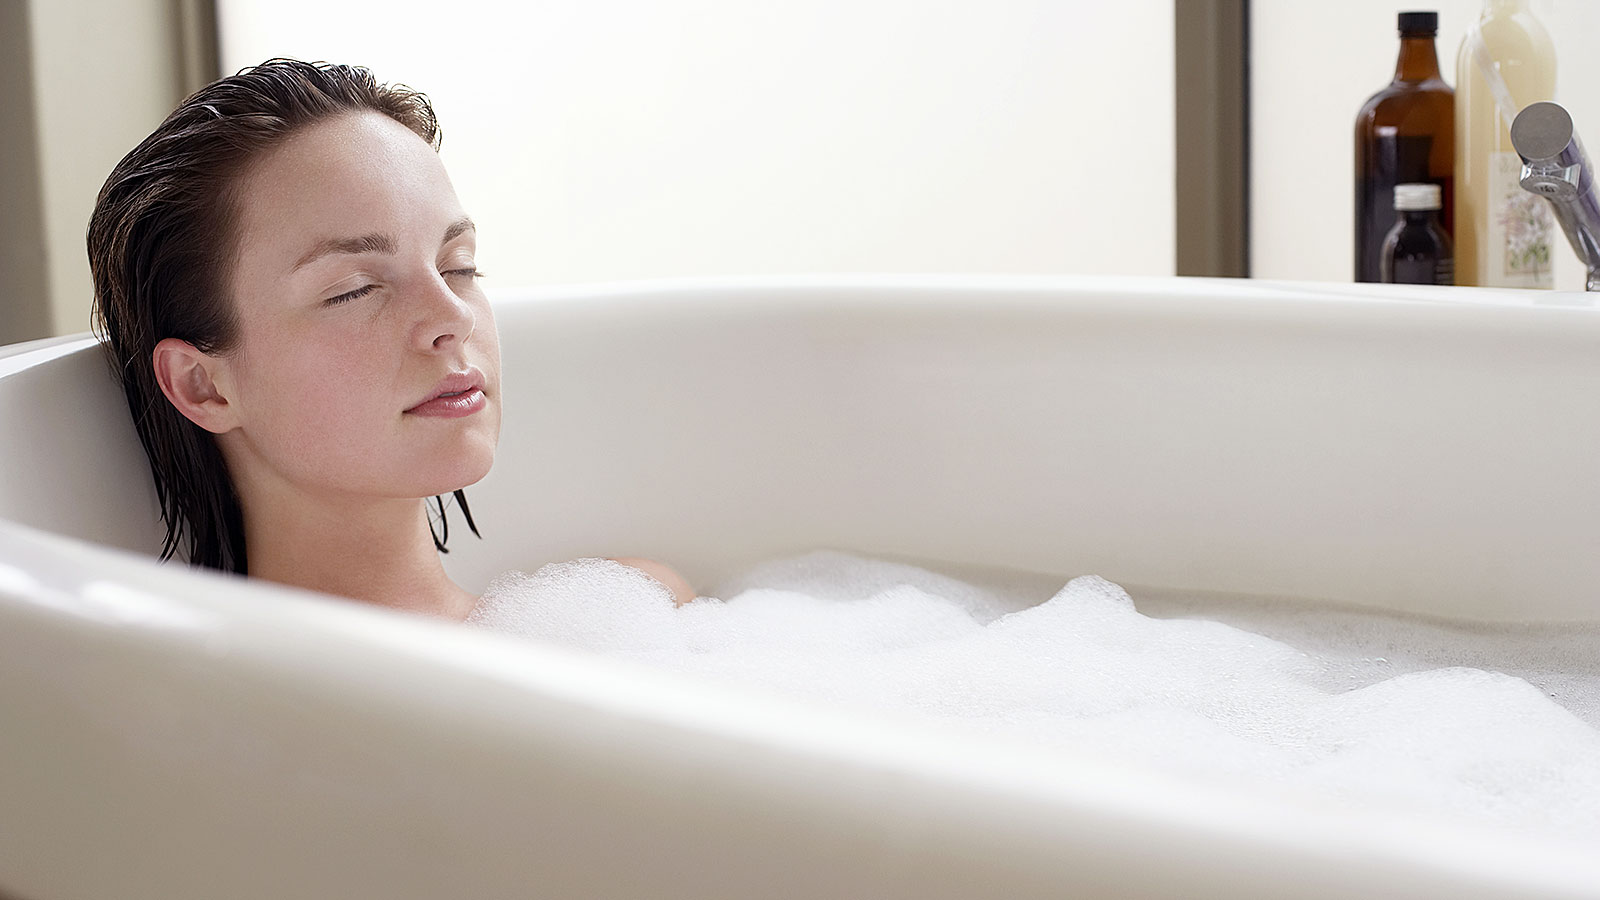 Want better sleep? Try a warm bath or shower 1-2 hours before bedtime, study suggests